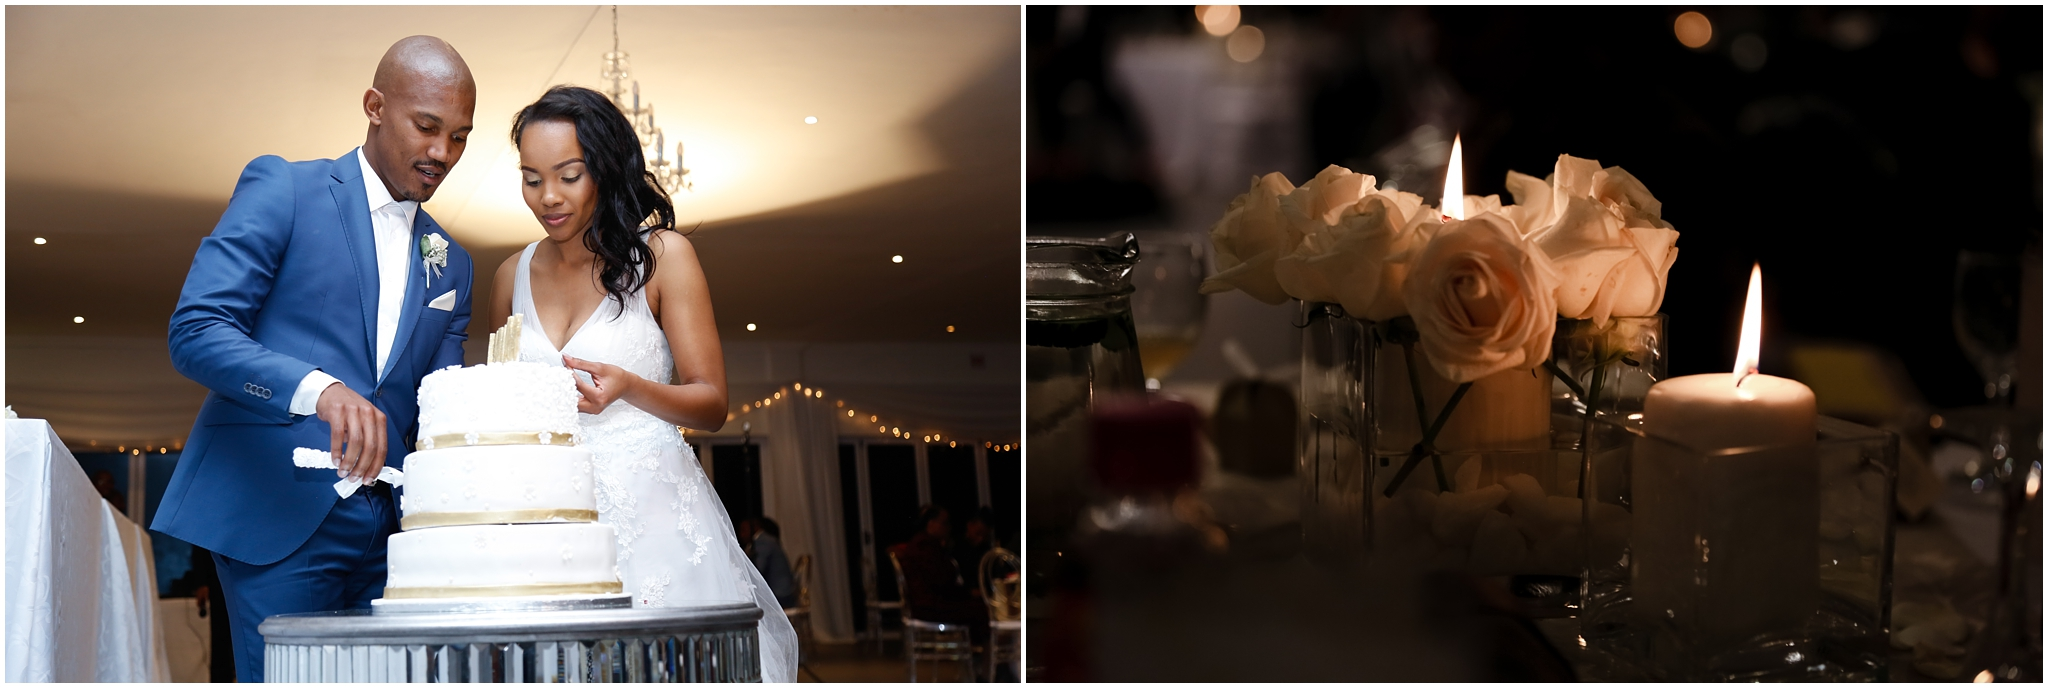 lelethu-kgotsos-wedding-candice-dollery-photography_1740